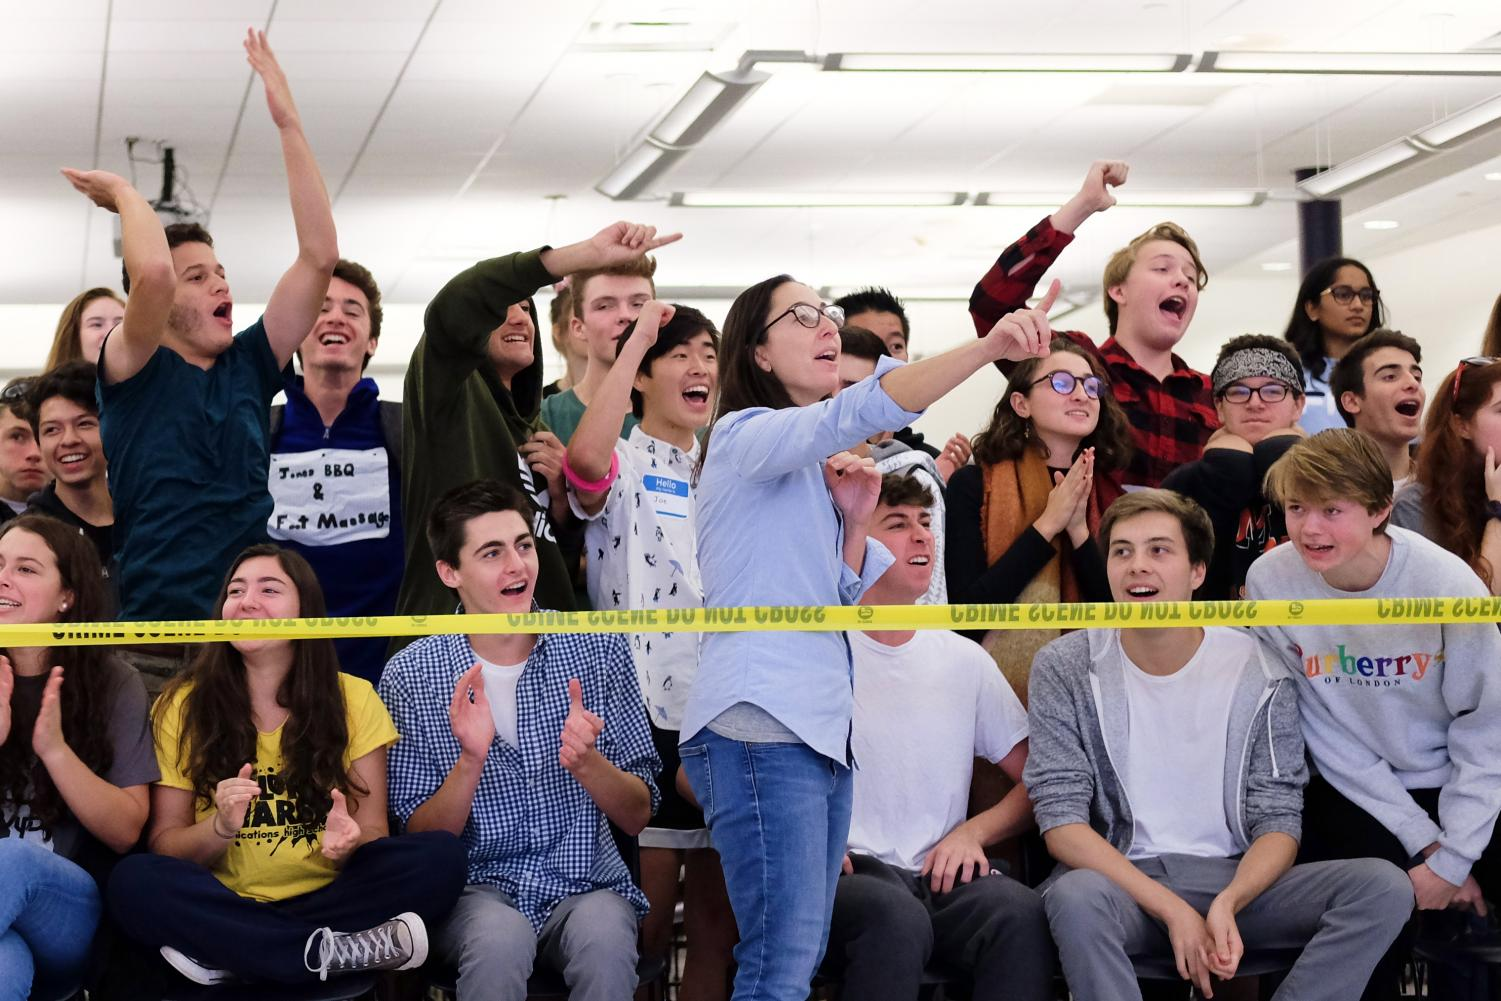 Students cheer their respective grades on during the dodgeball game on Wednesday.